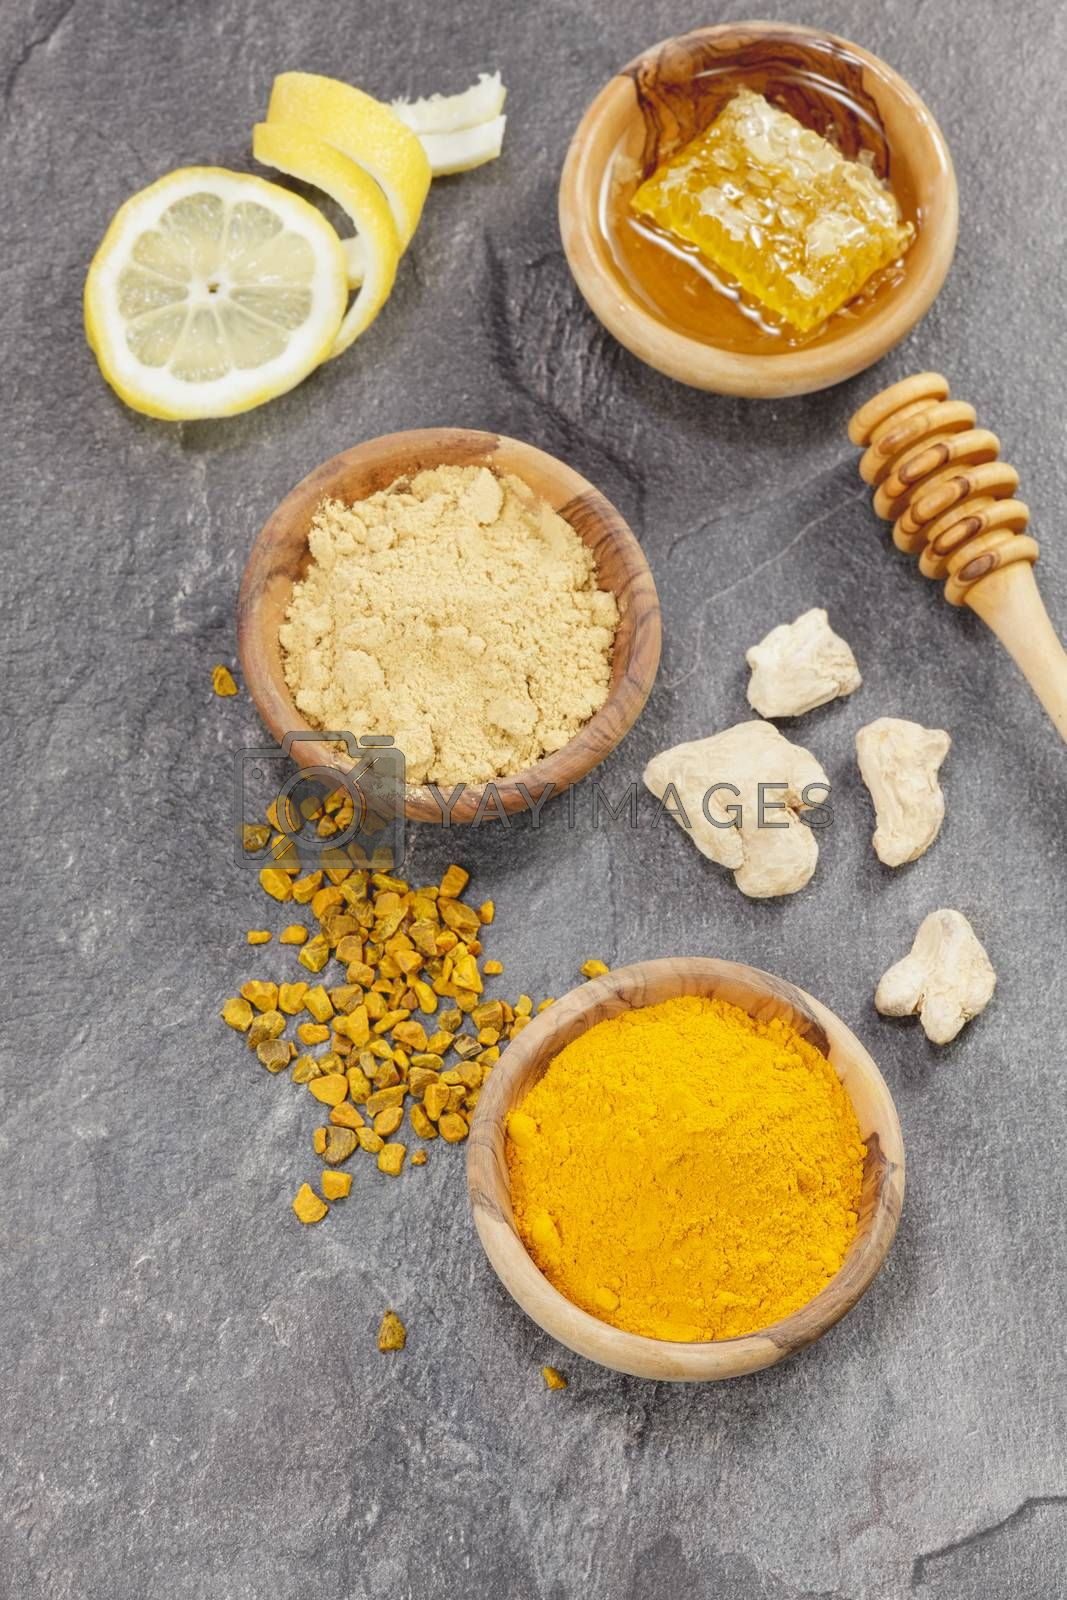 Ginger, Turmeric and honeycomb. by Slast20